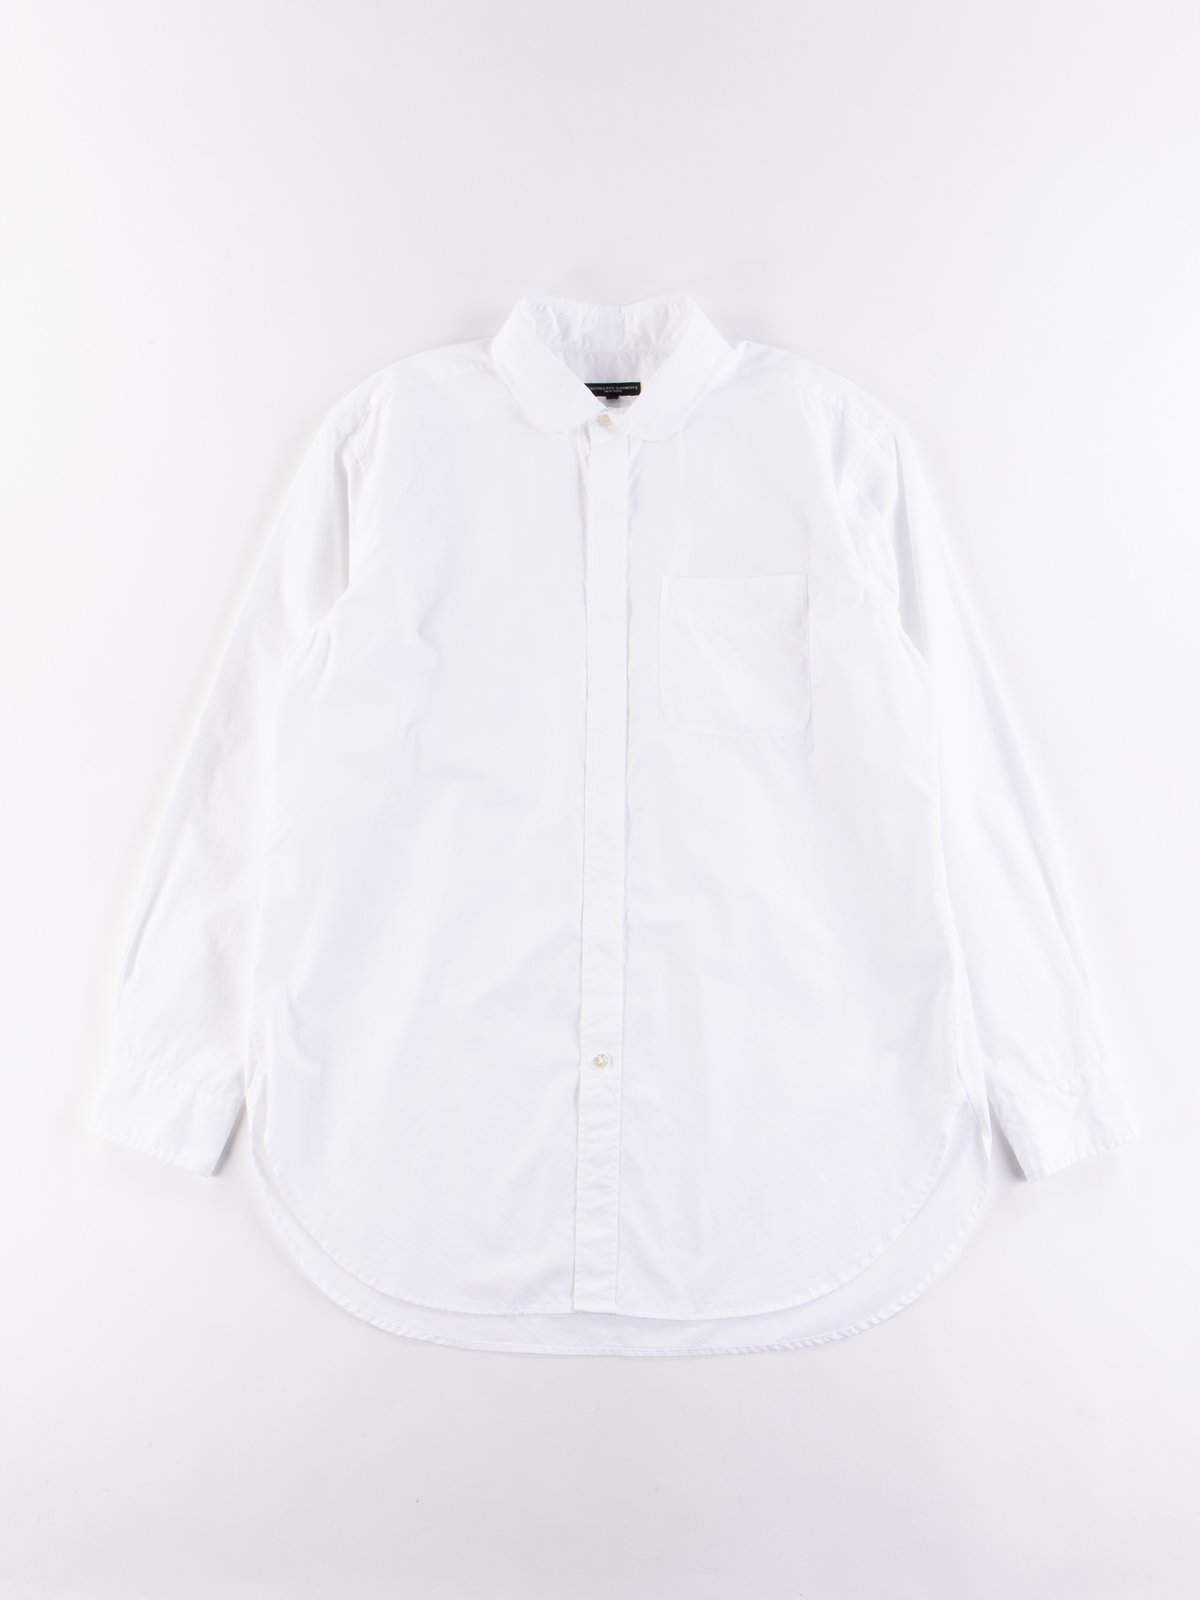 White 100's 2Ply Broadcloth Rounded Collar Shirt - Image 1